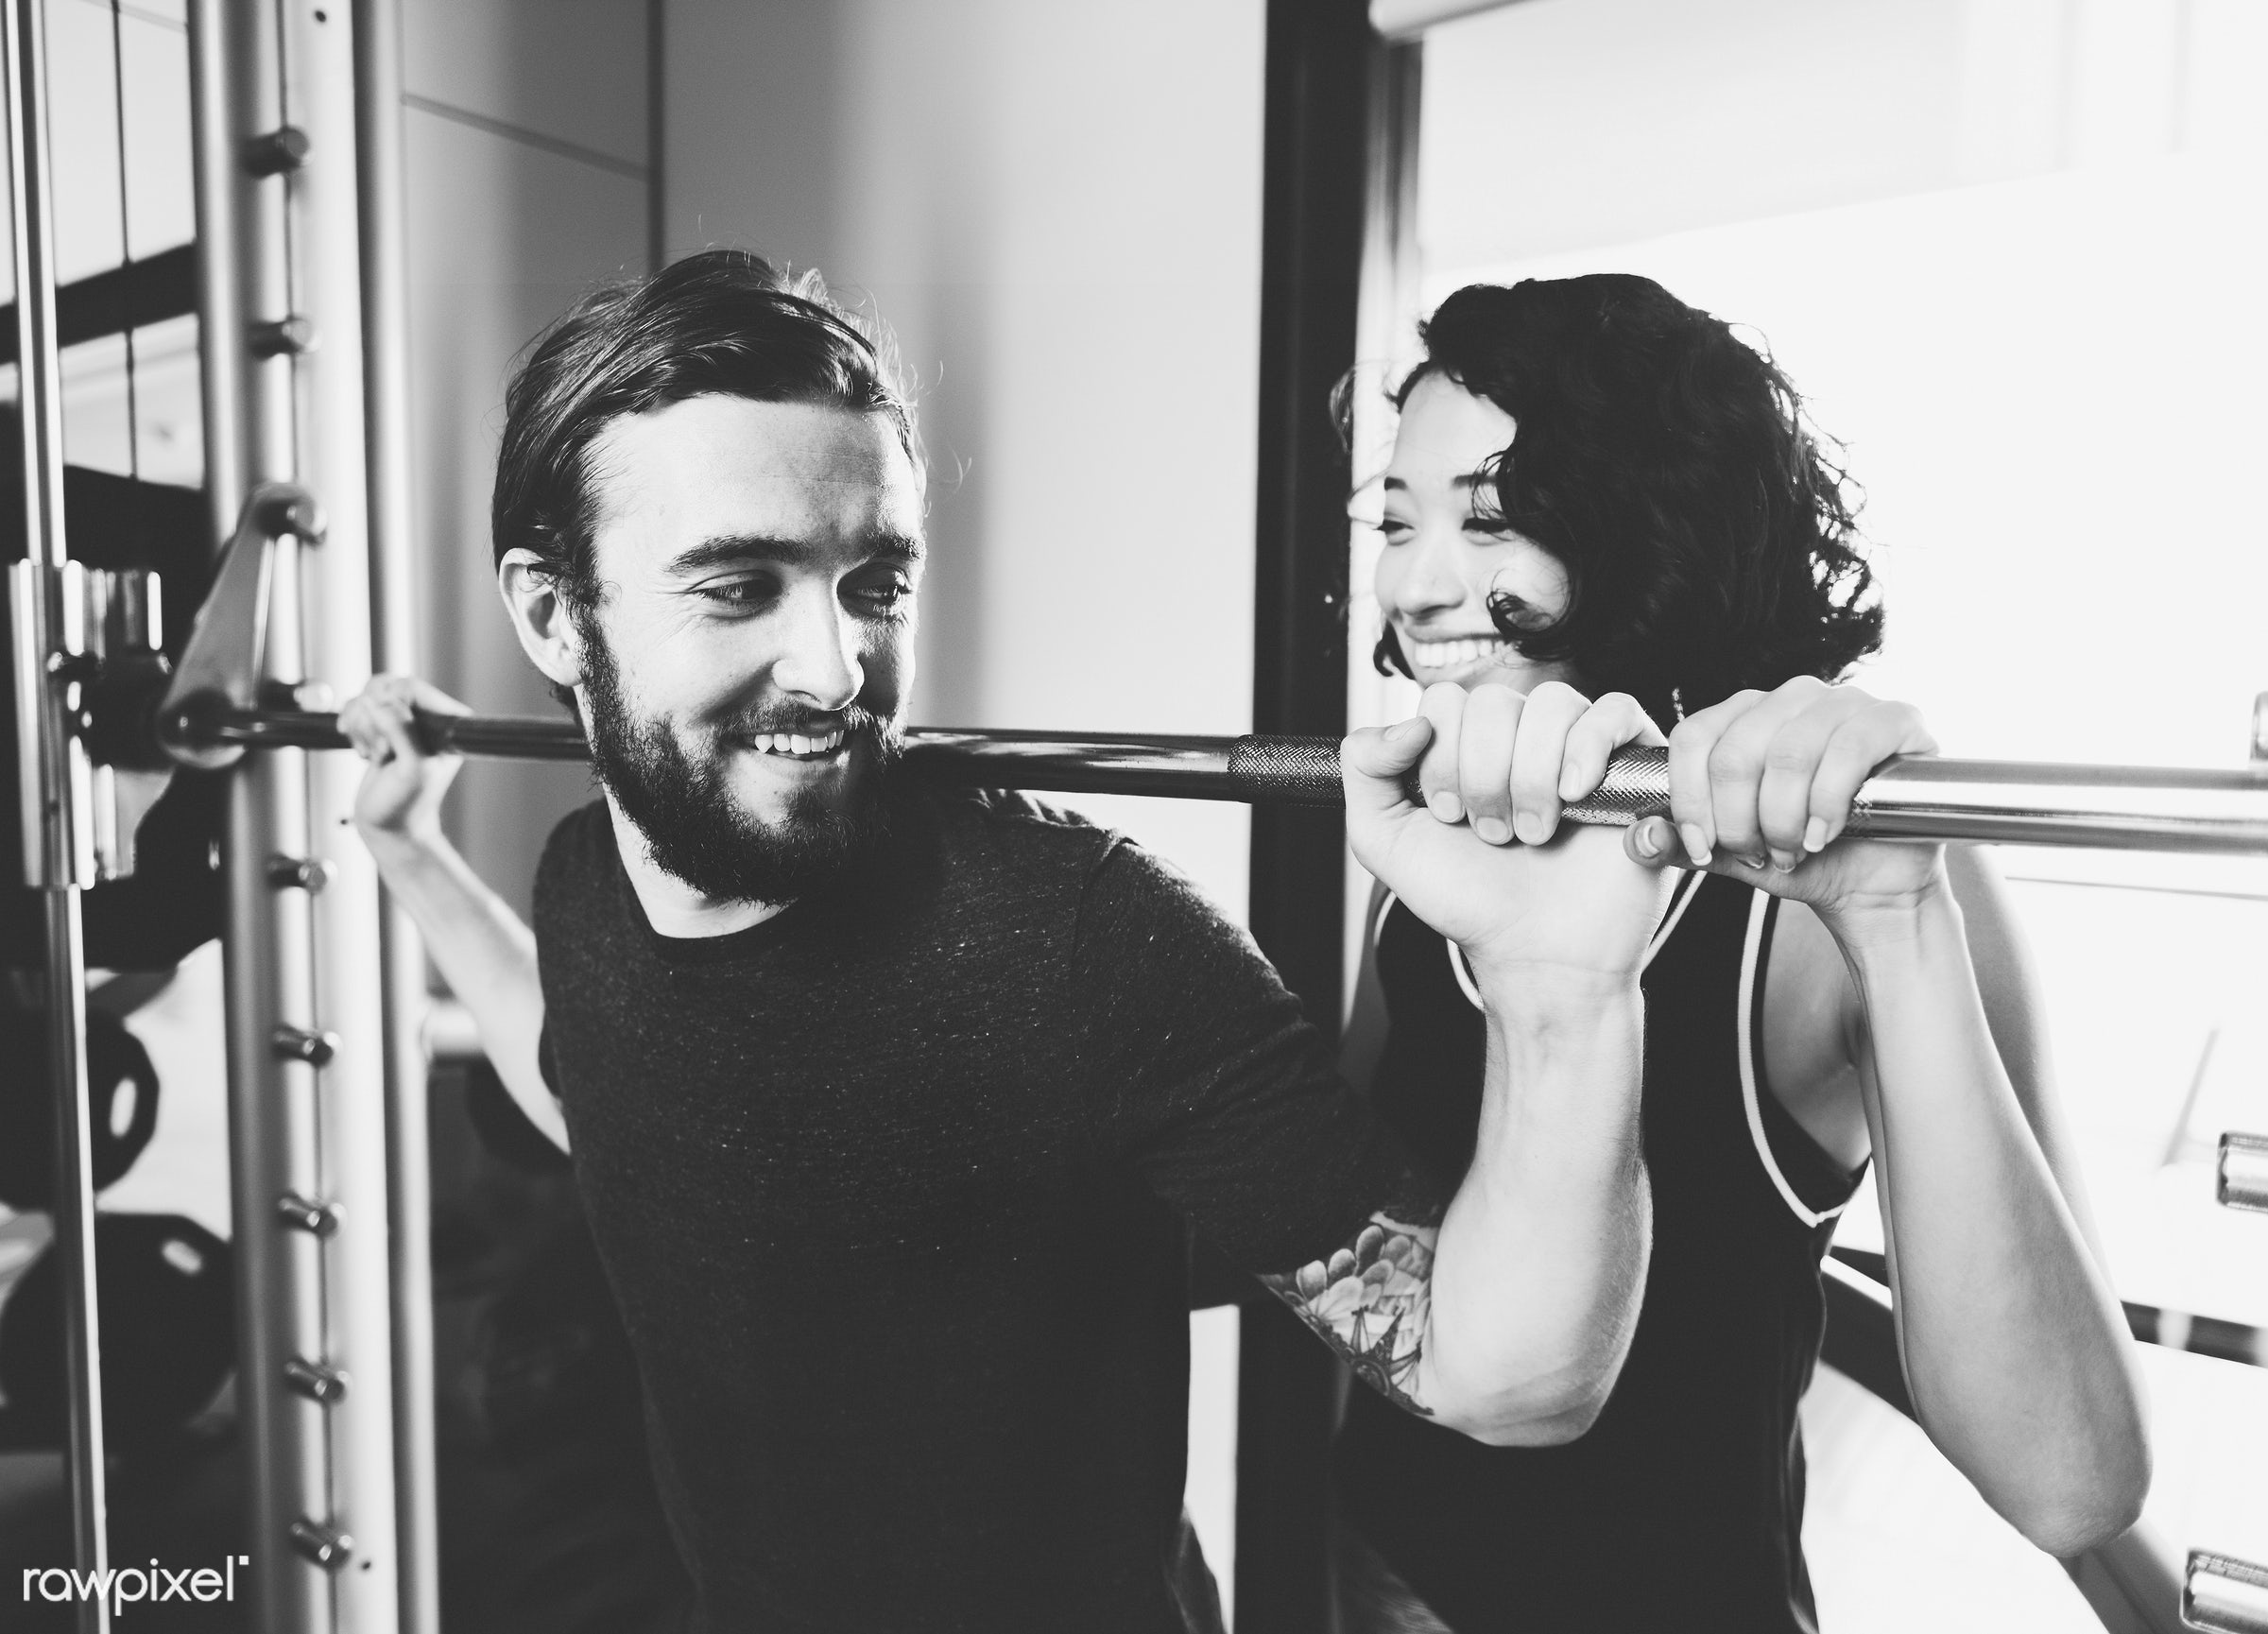 instructor, wellbeingwellness, pushing, exercise, barbell, together, working out, trainer, training, couple, gym, cheerful,...